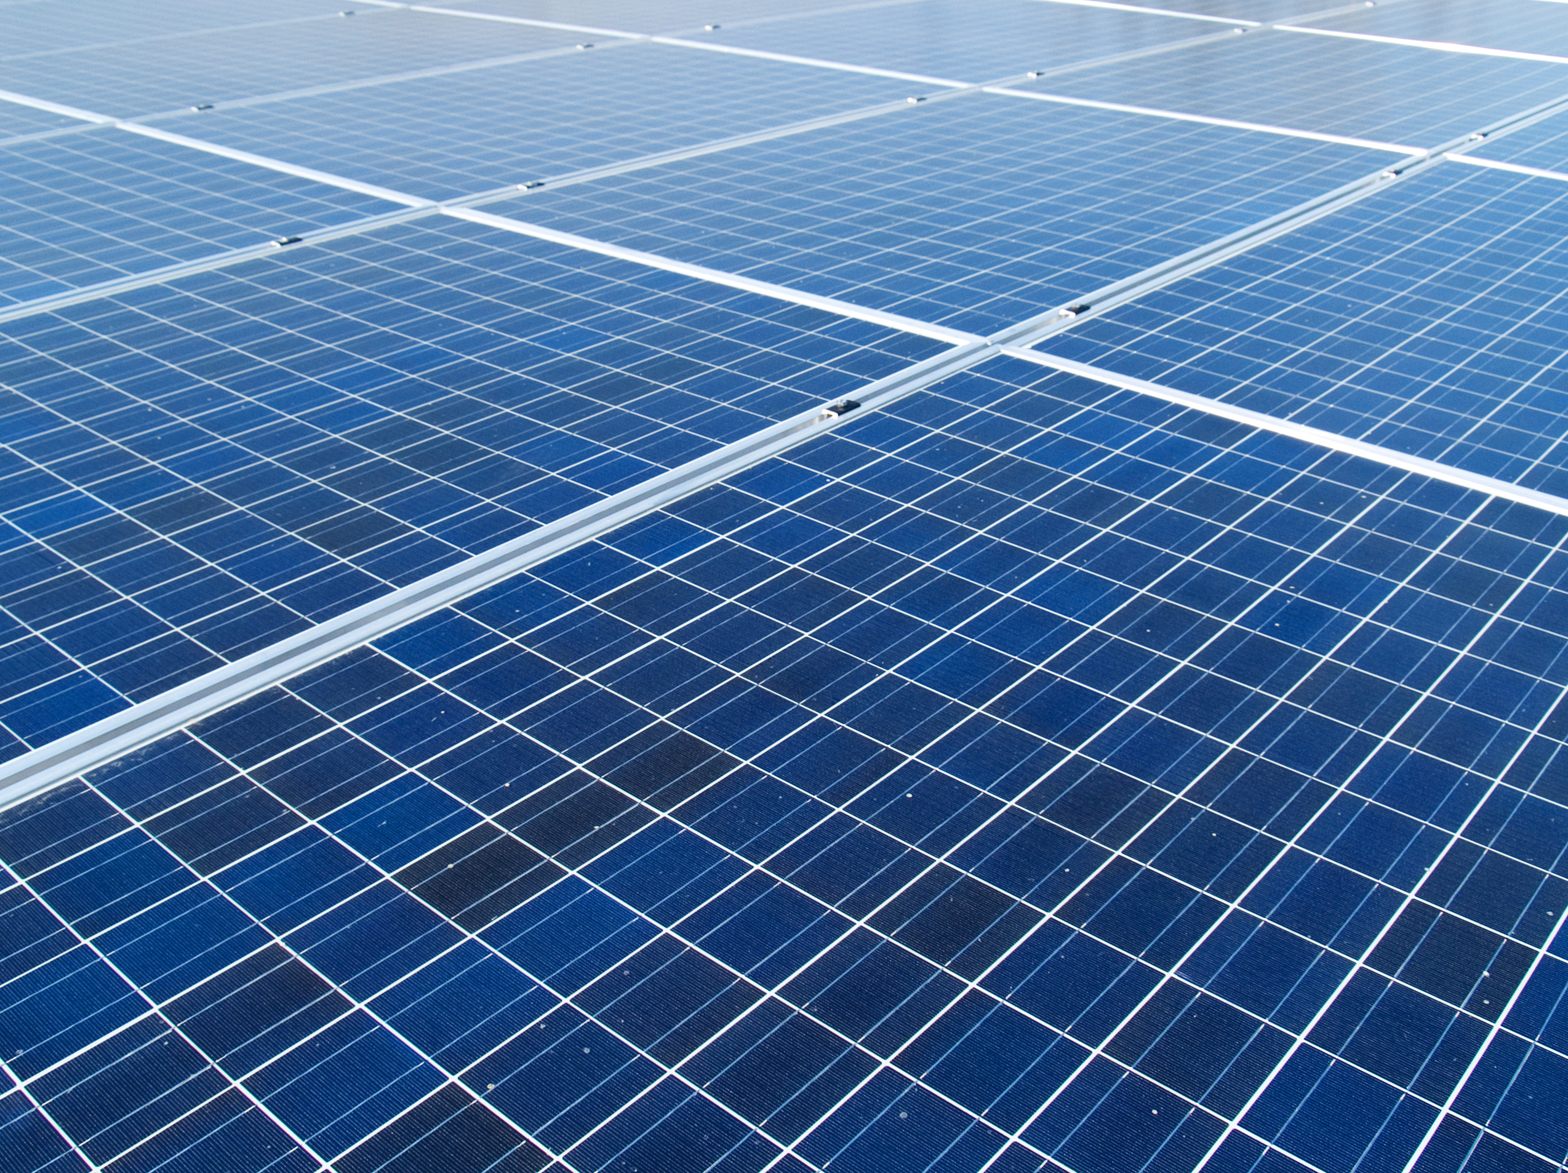 The 300MW PV plant will generate enough energy to power around 11,000 homes. Image: Slimdandy/Flickr